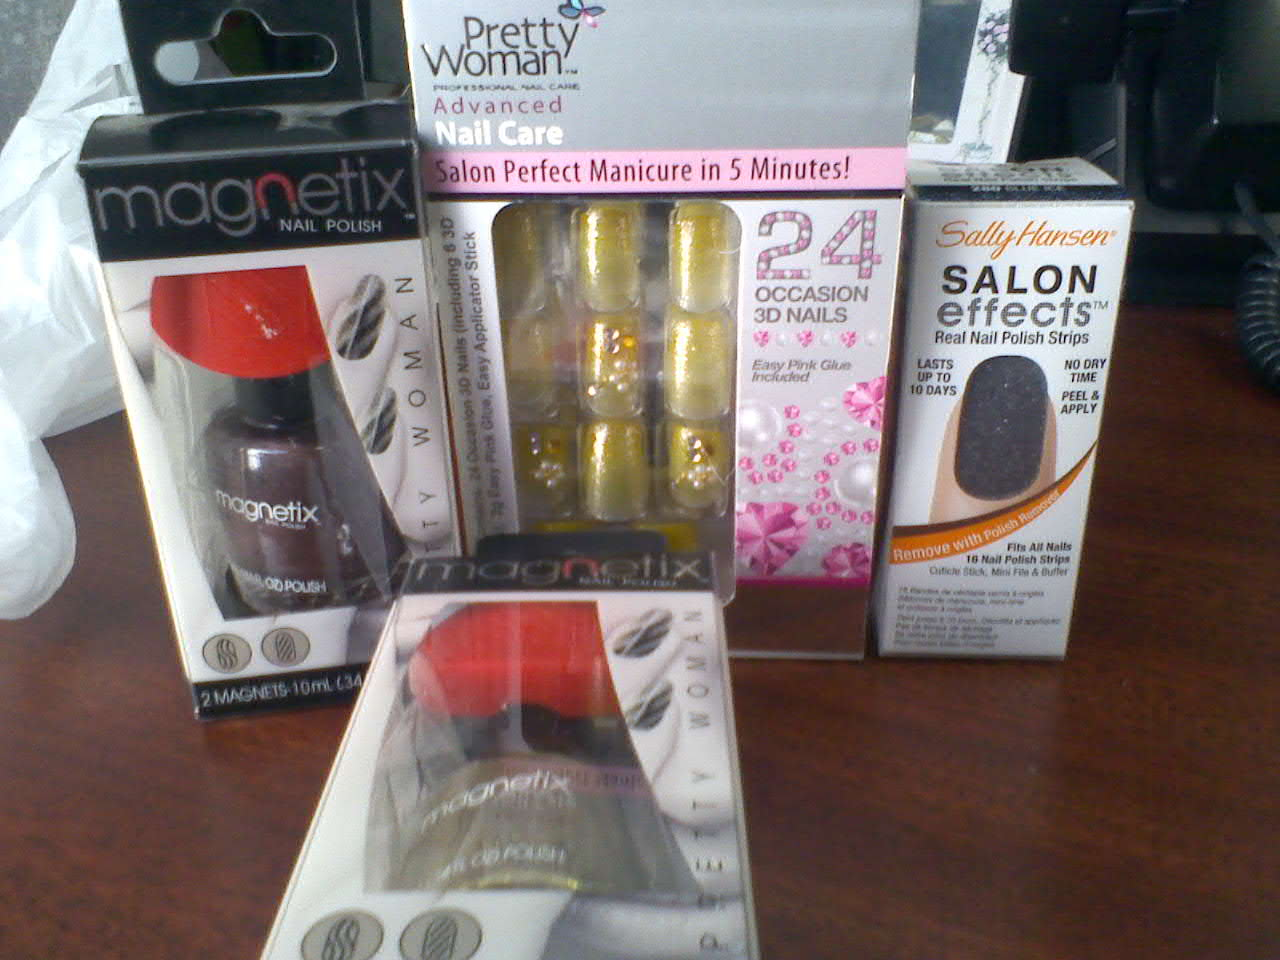 Free Pretty Woman Press On & Magnetix Nail Polish @ RA